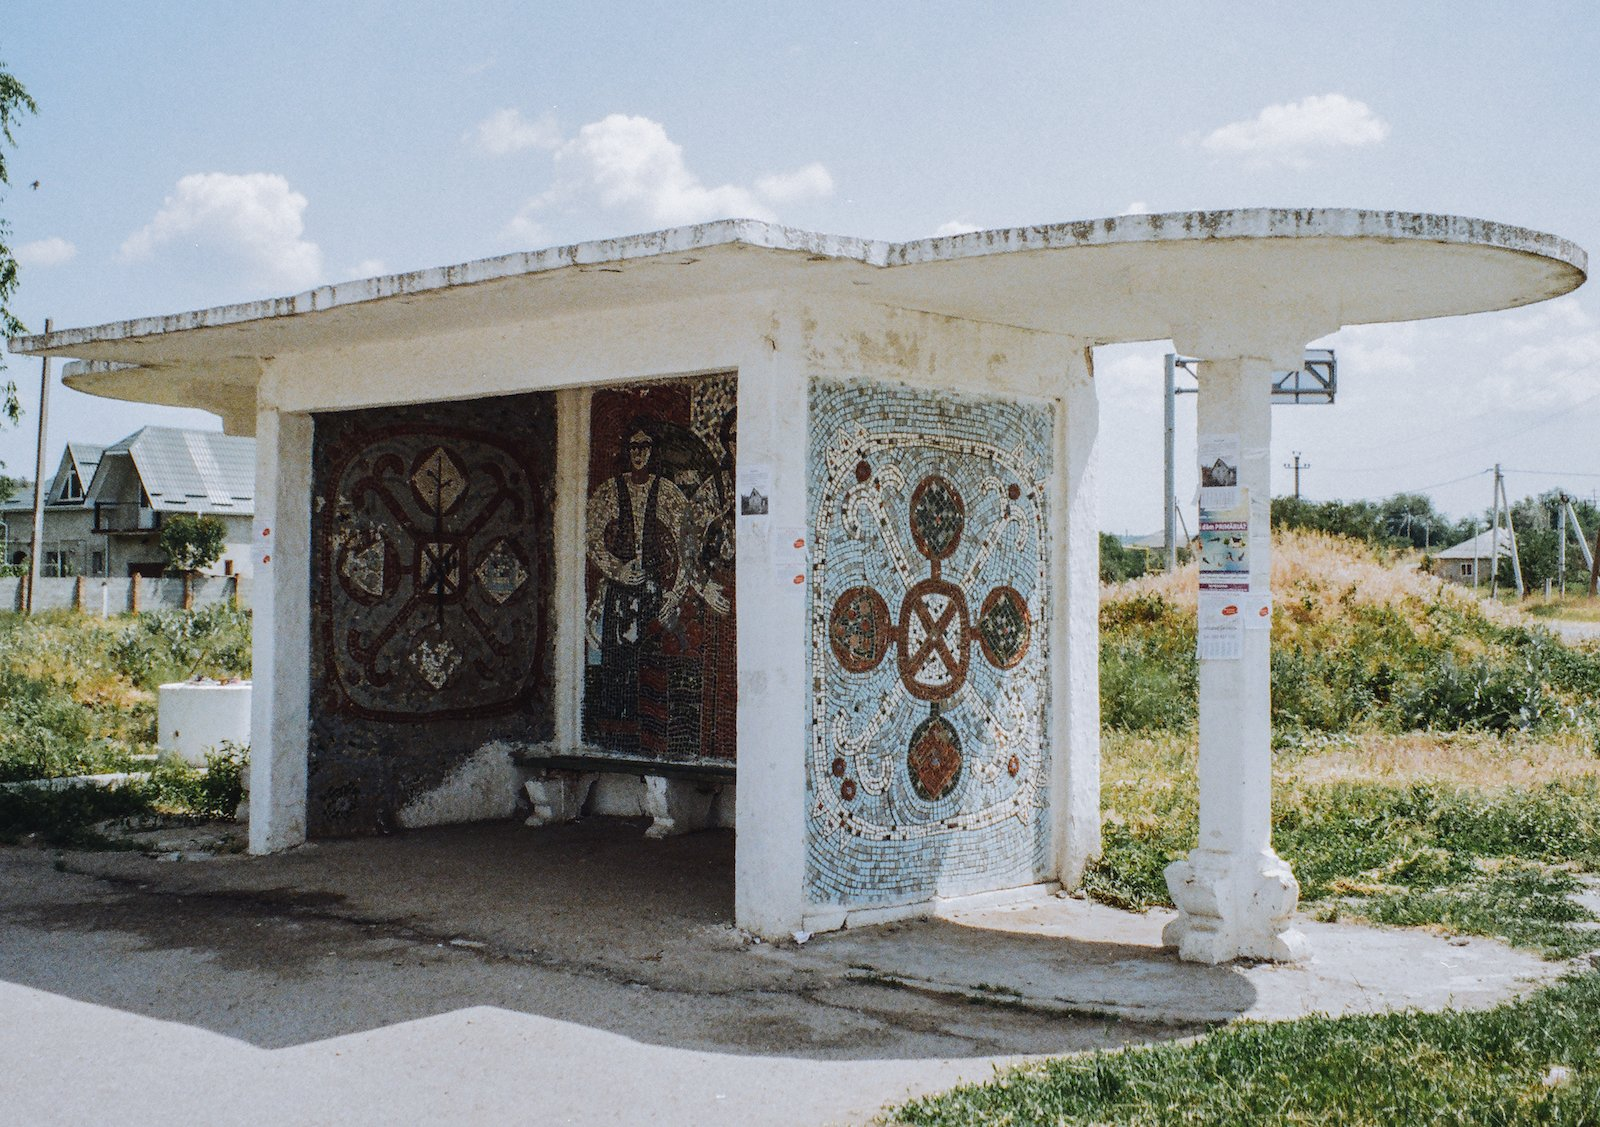 Take a tour across Moldova's Soviet-era public art with this Insta account